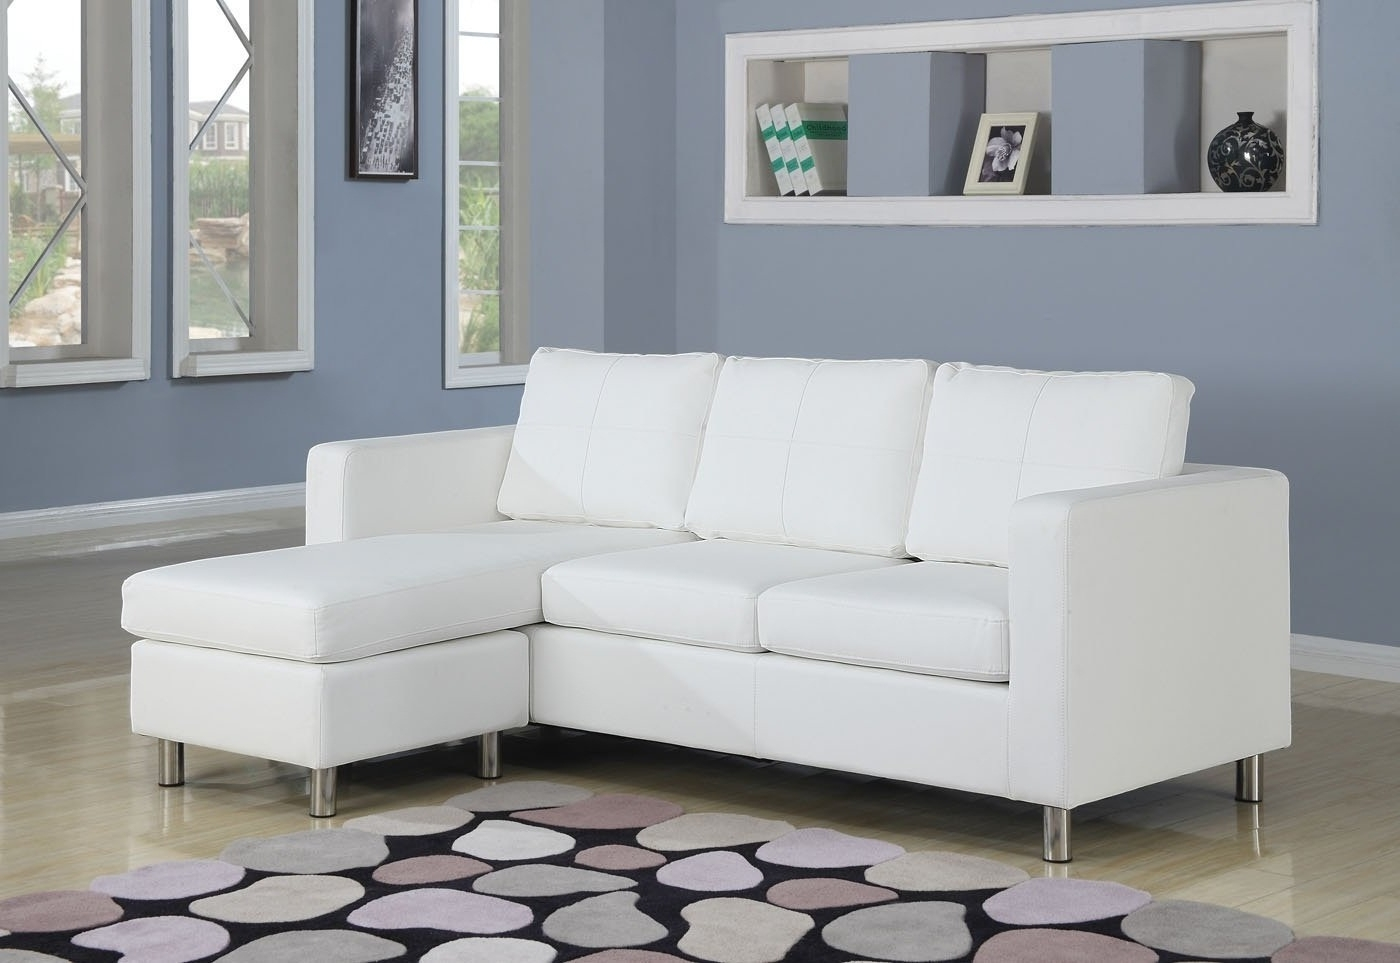 Widely Used White Sectional Sofas With Chaise Within L White Leather Sectional Sofa With Chaise And Back Also Arms On (View 2 of 15)